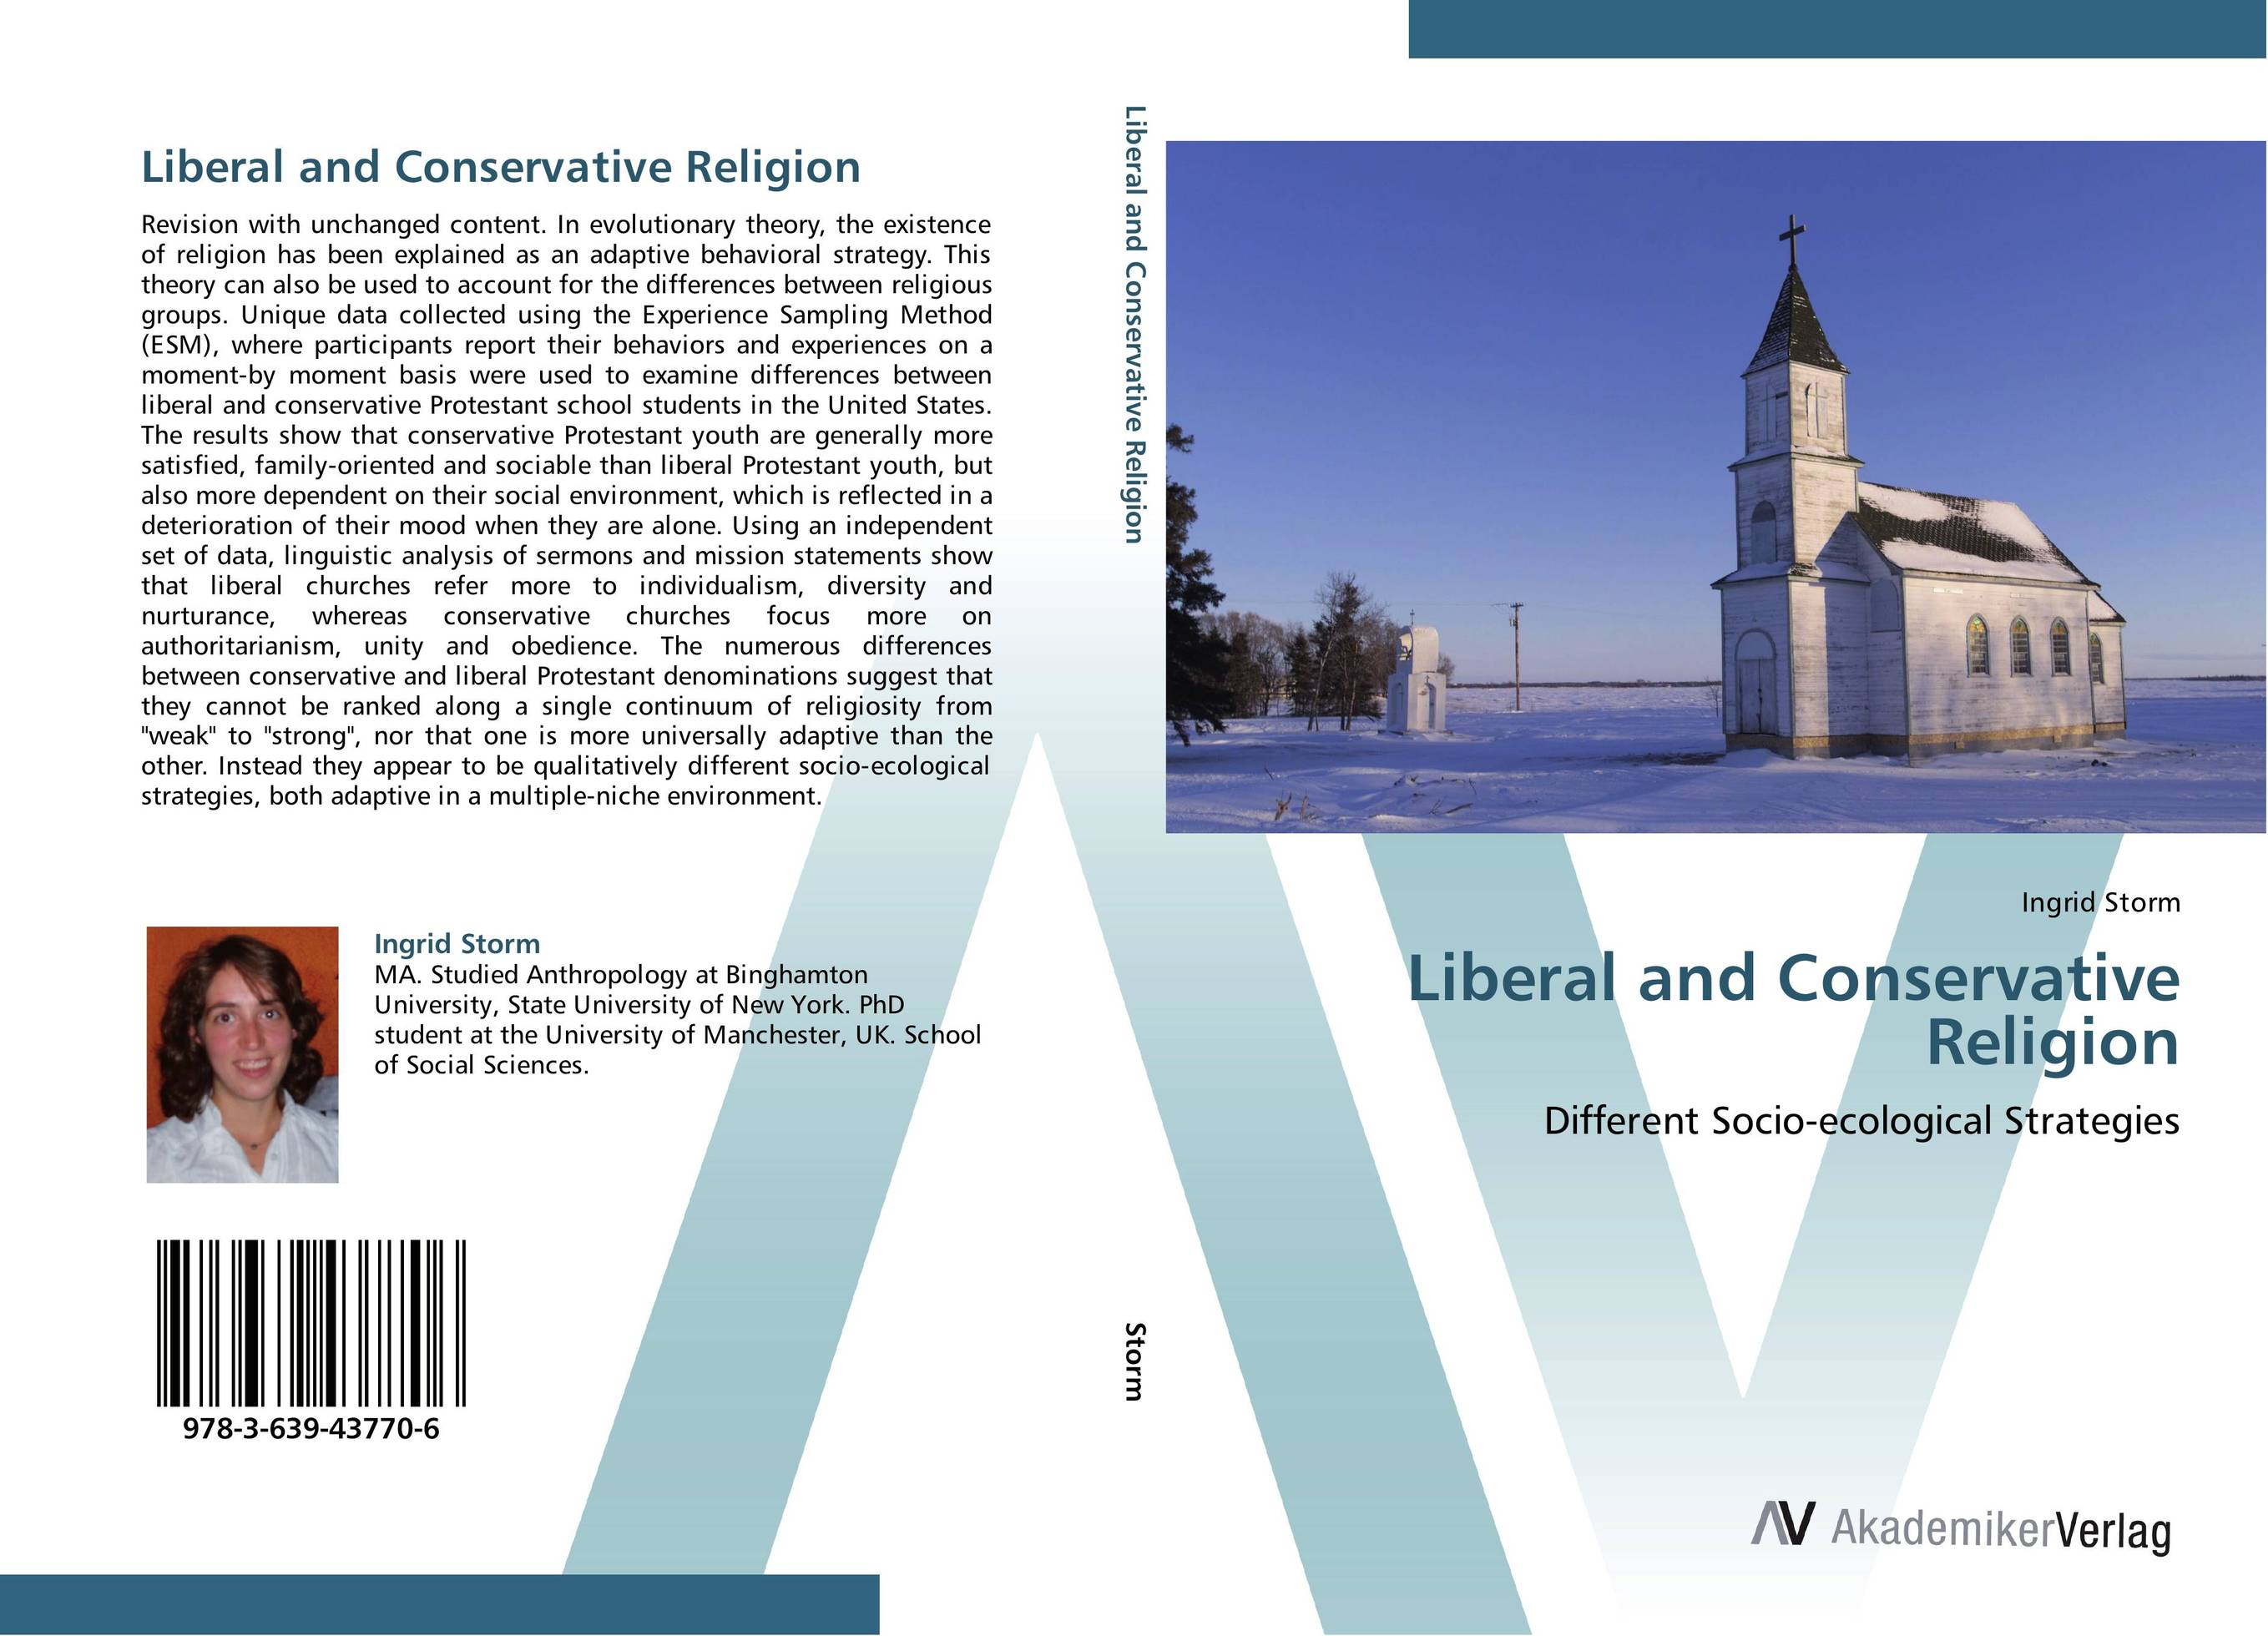 Liberal and Conservative Religion linguistic diversity and social justice